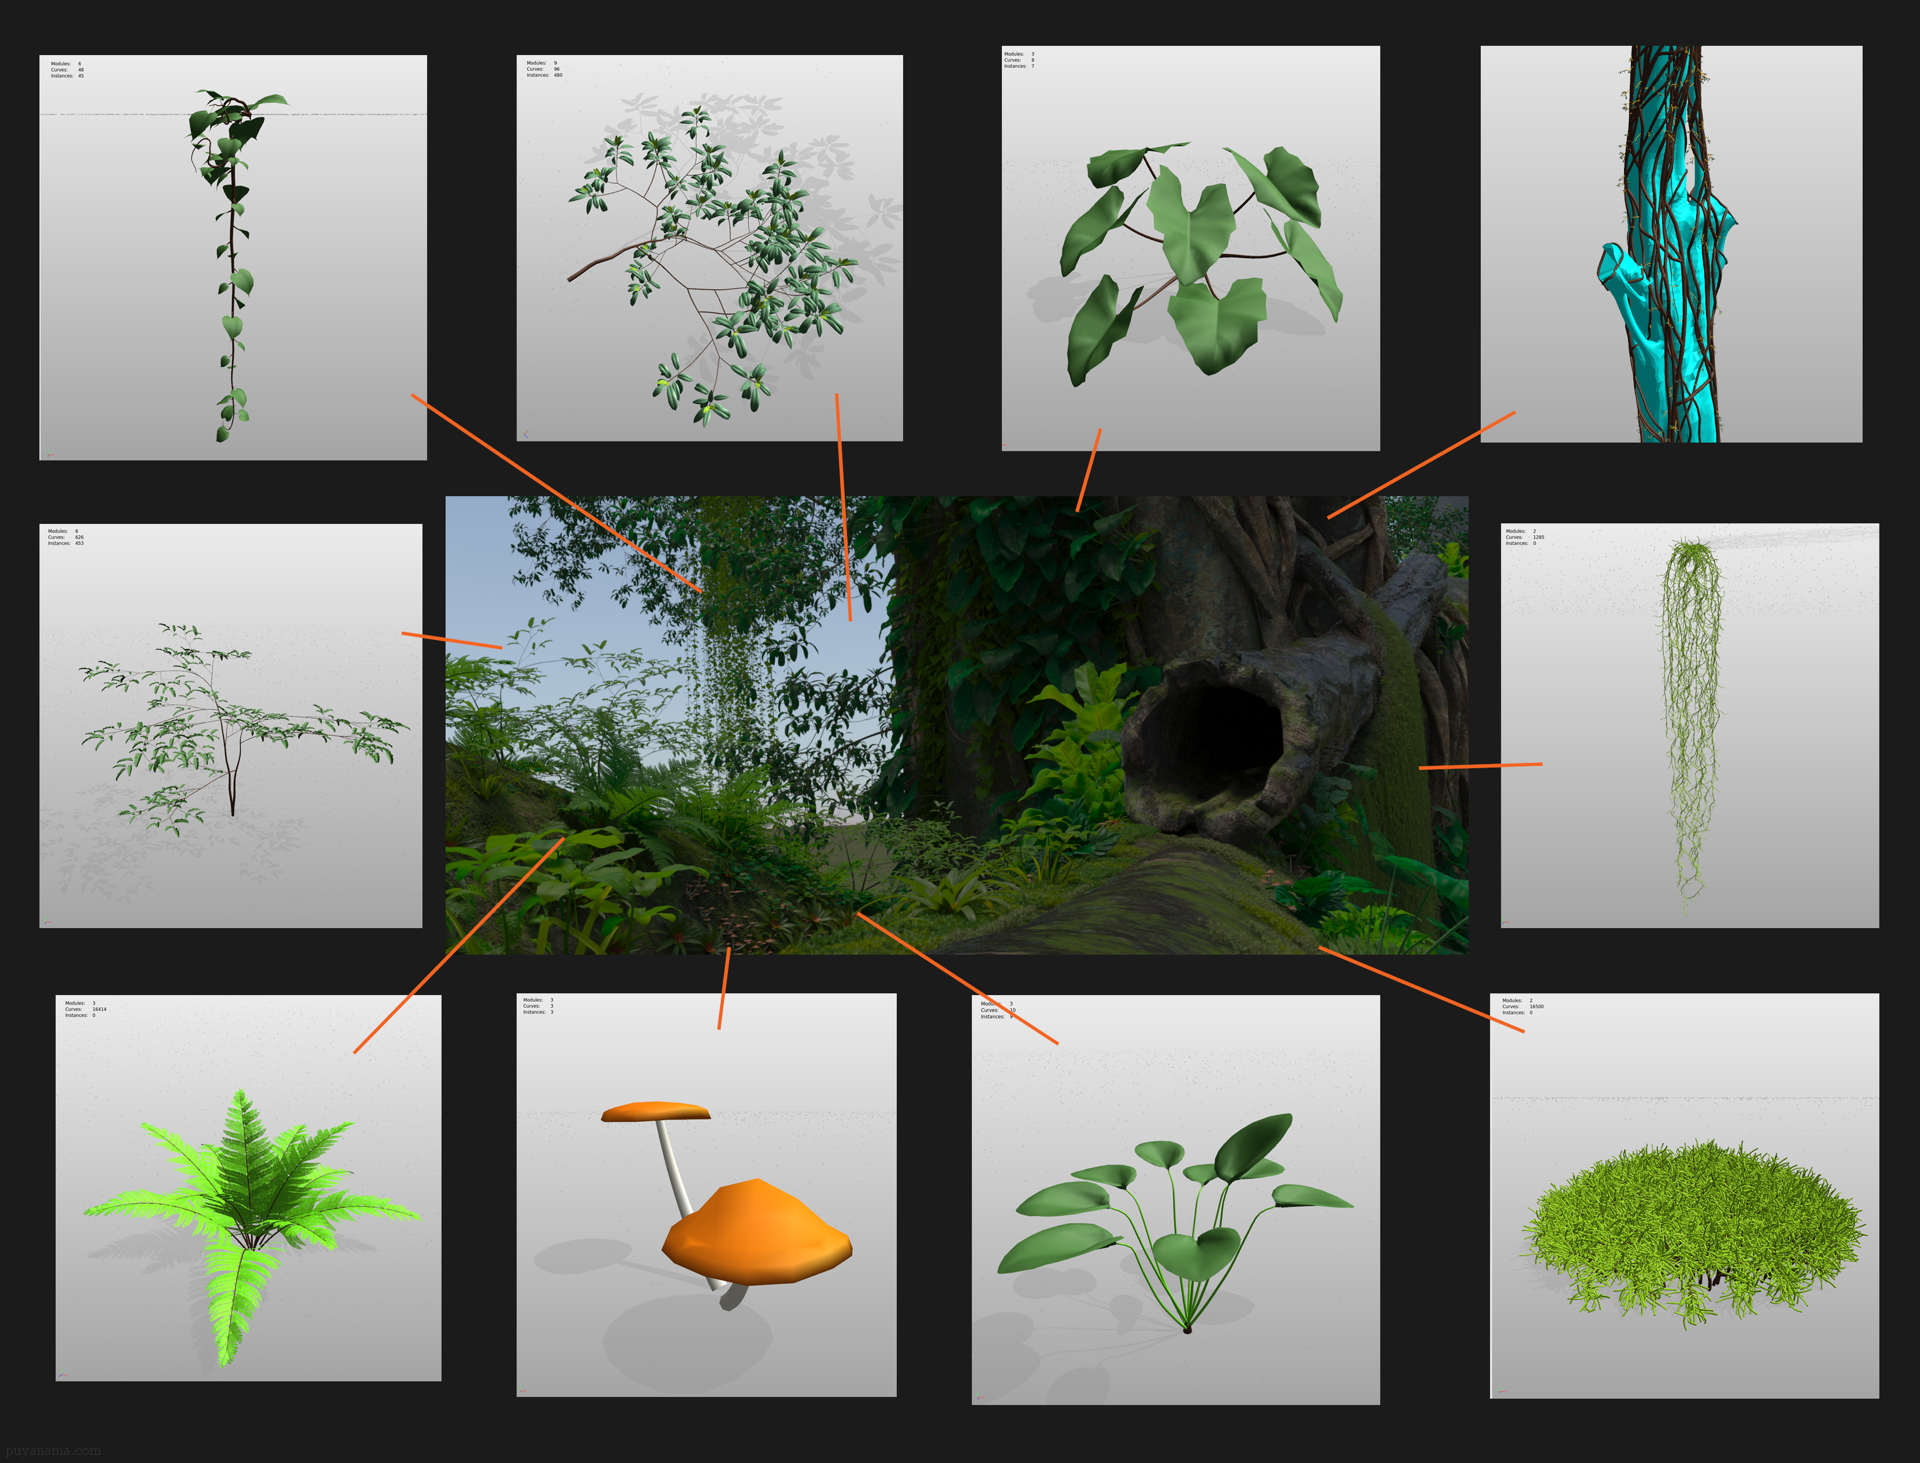 Veg-Bonsai-in-environment